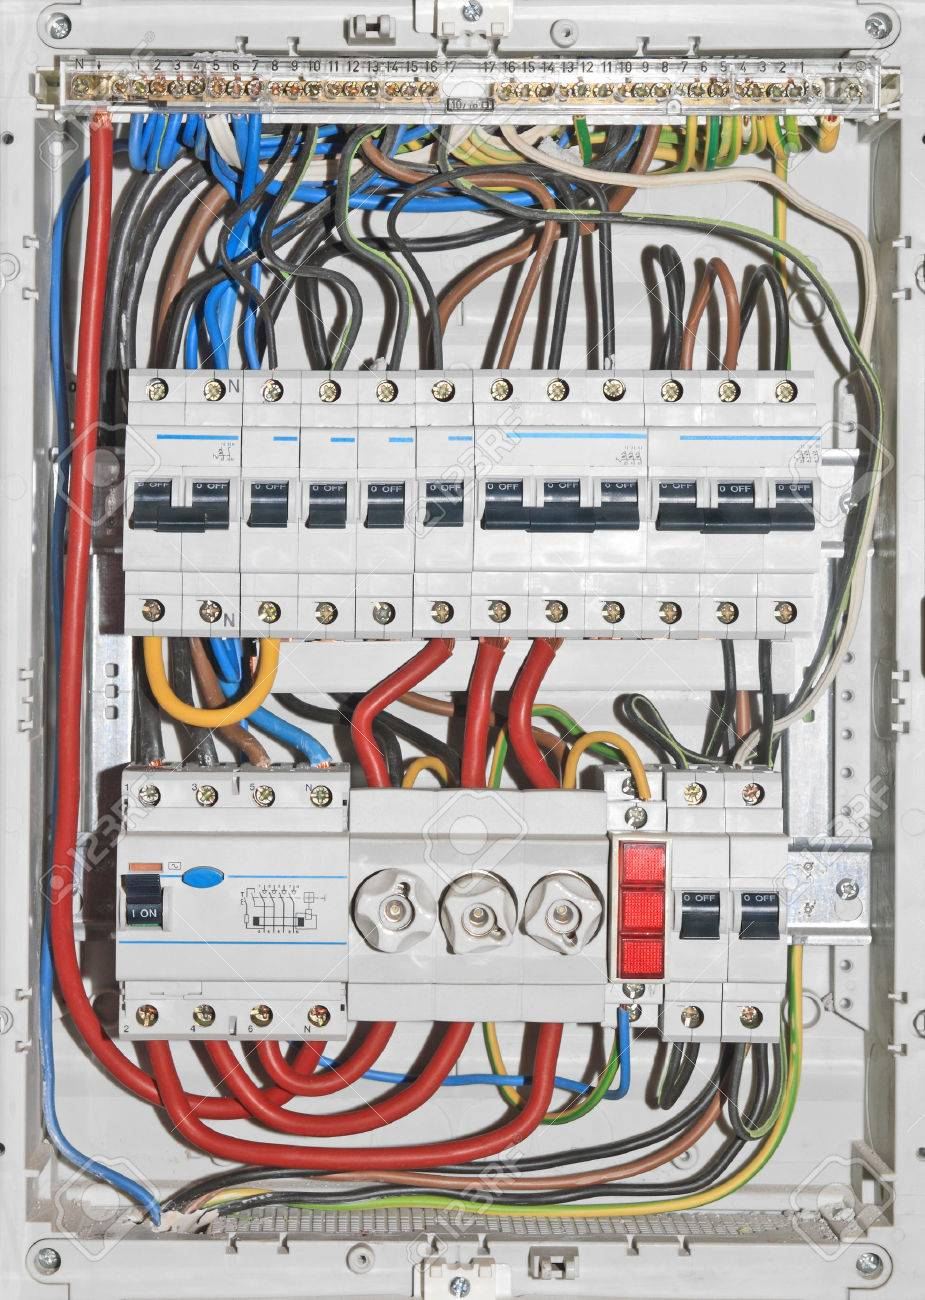 Domestic Electrical Distribution Board Mounted On Wall Stock Photo Picture And Royalty Free Image Image 25312841